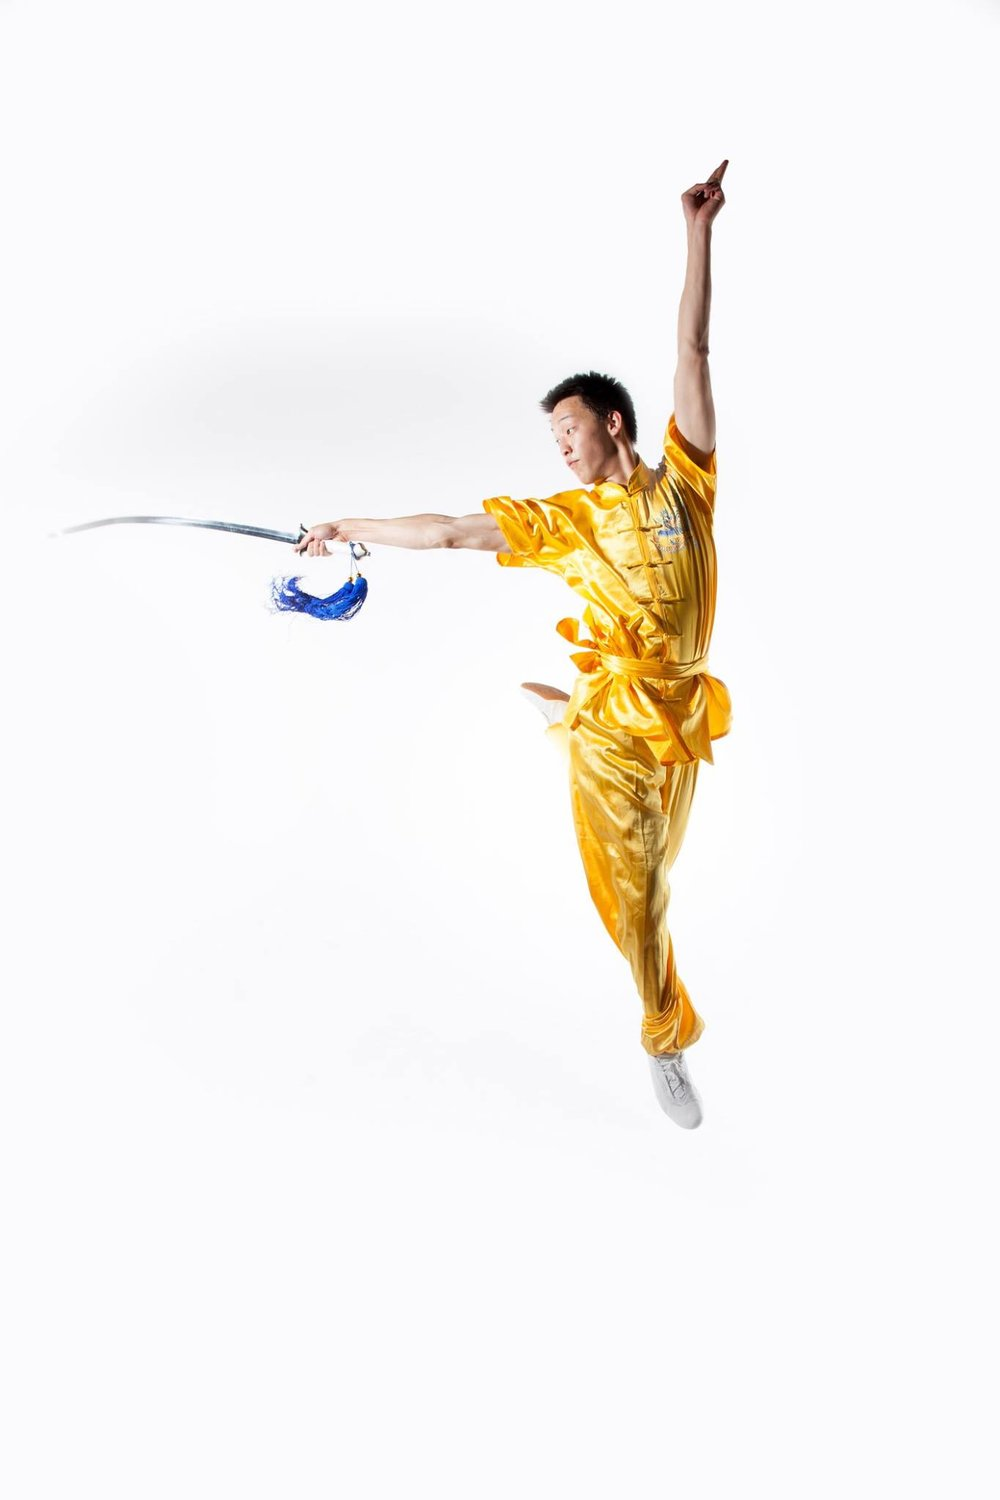 Alan has an extensive background in martial-arts, stage performance, and acrobatics that assist him in his creative work.